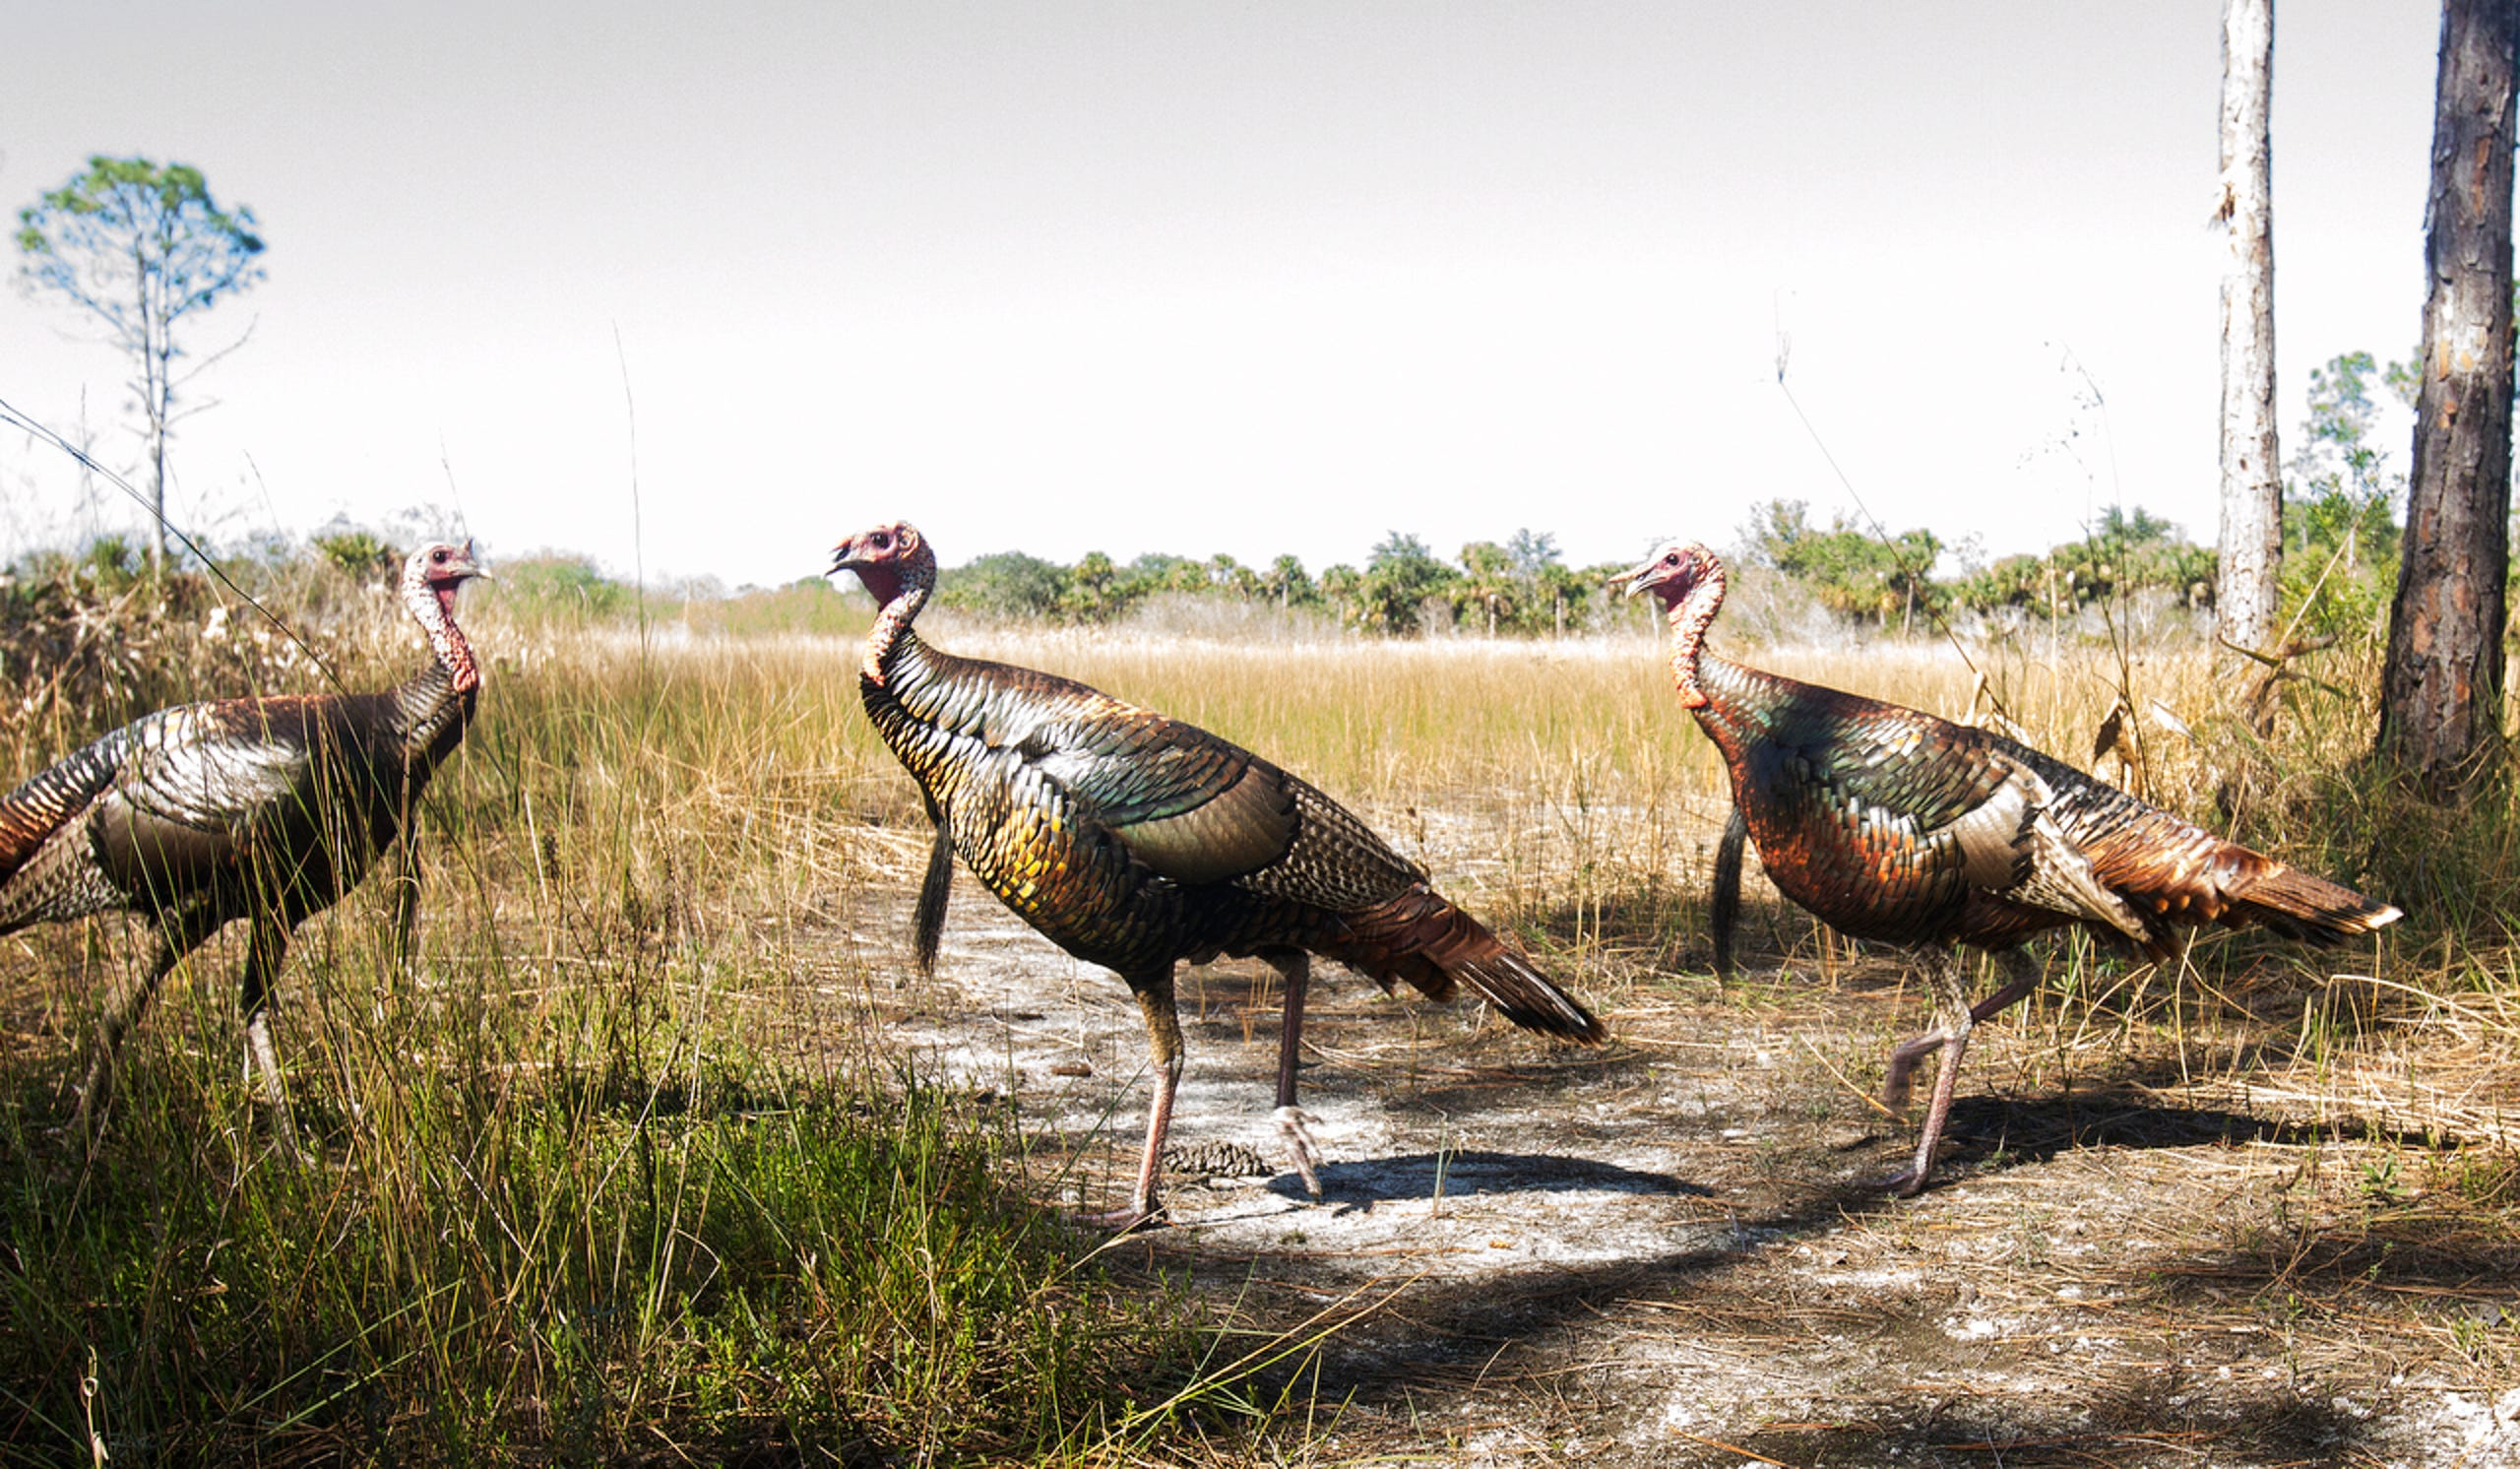 Wild turkey trip a camera trap. For over a year News-Press photographer Andrew West has kept a camera trap set up in the Corkscrew